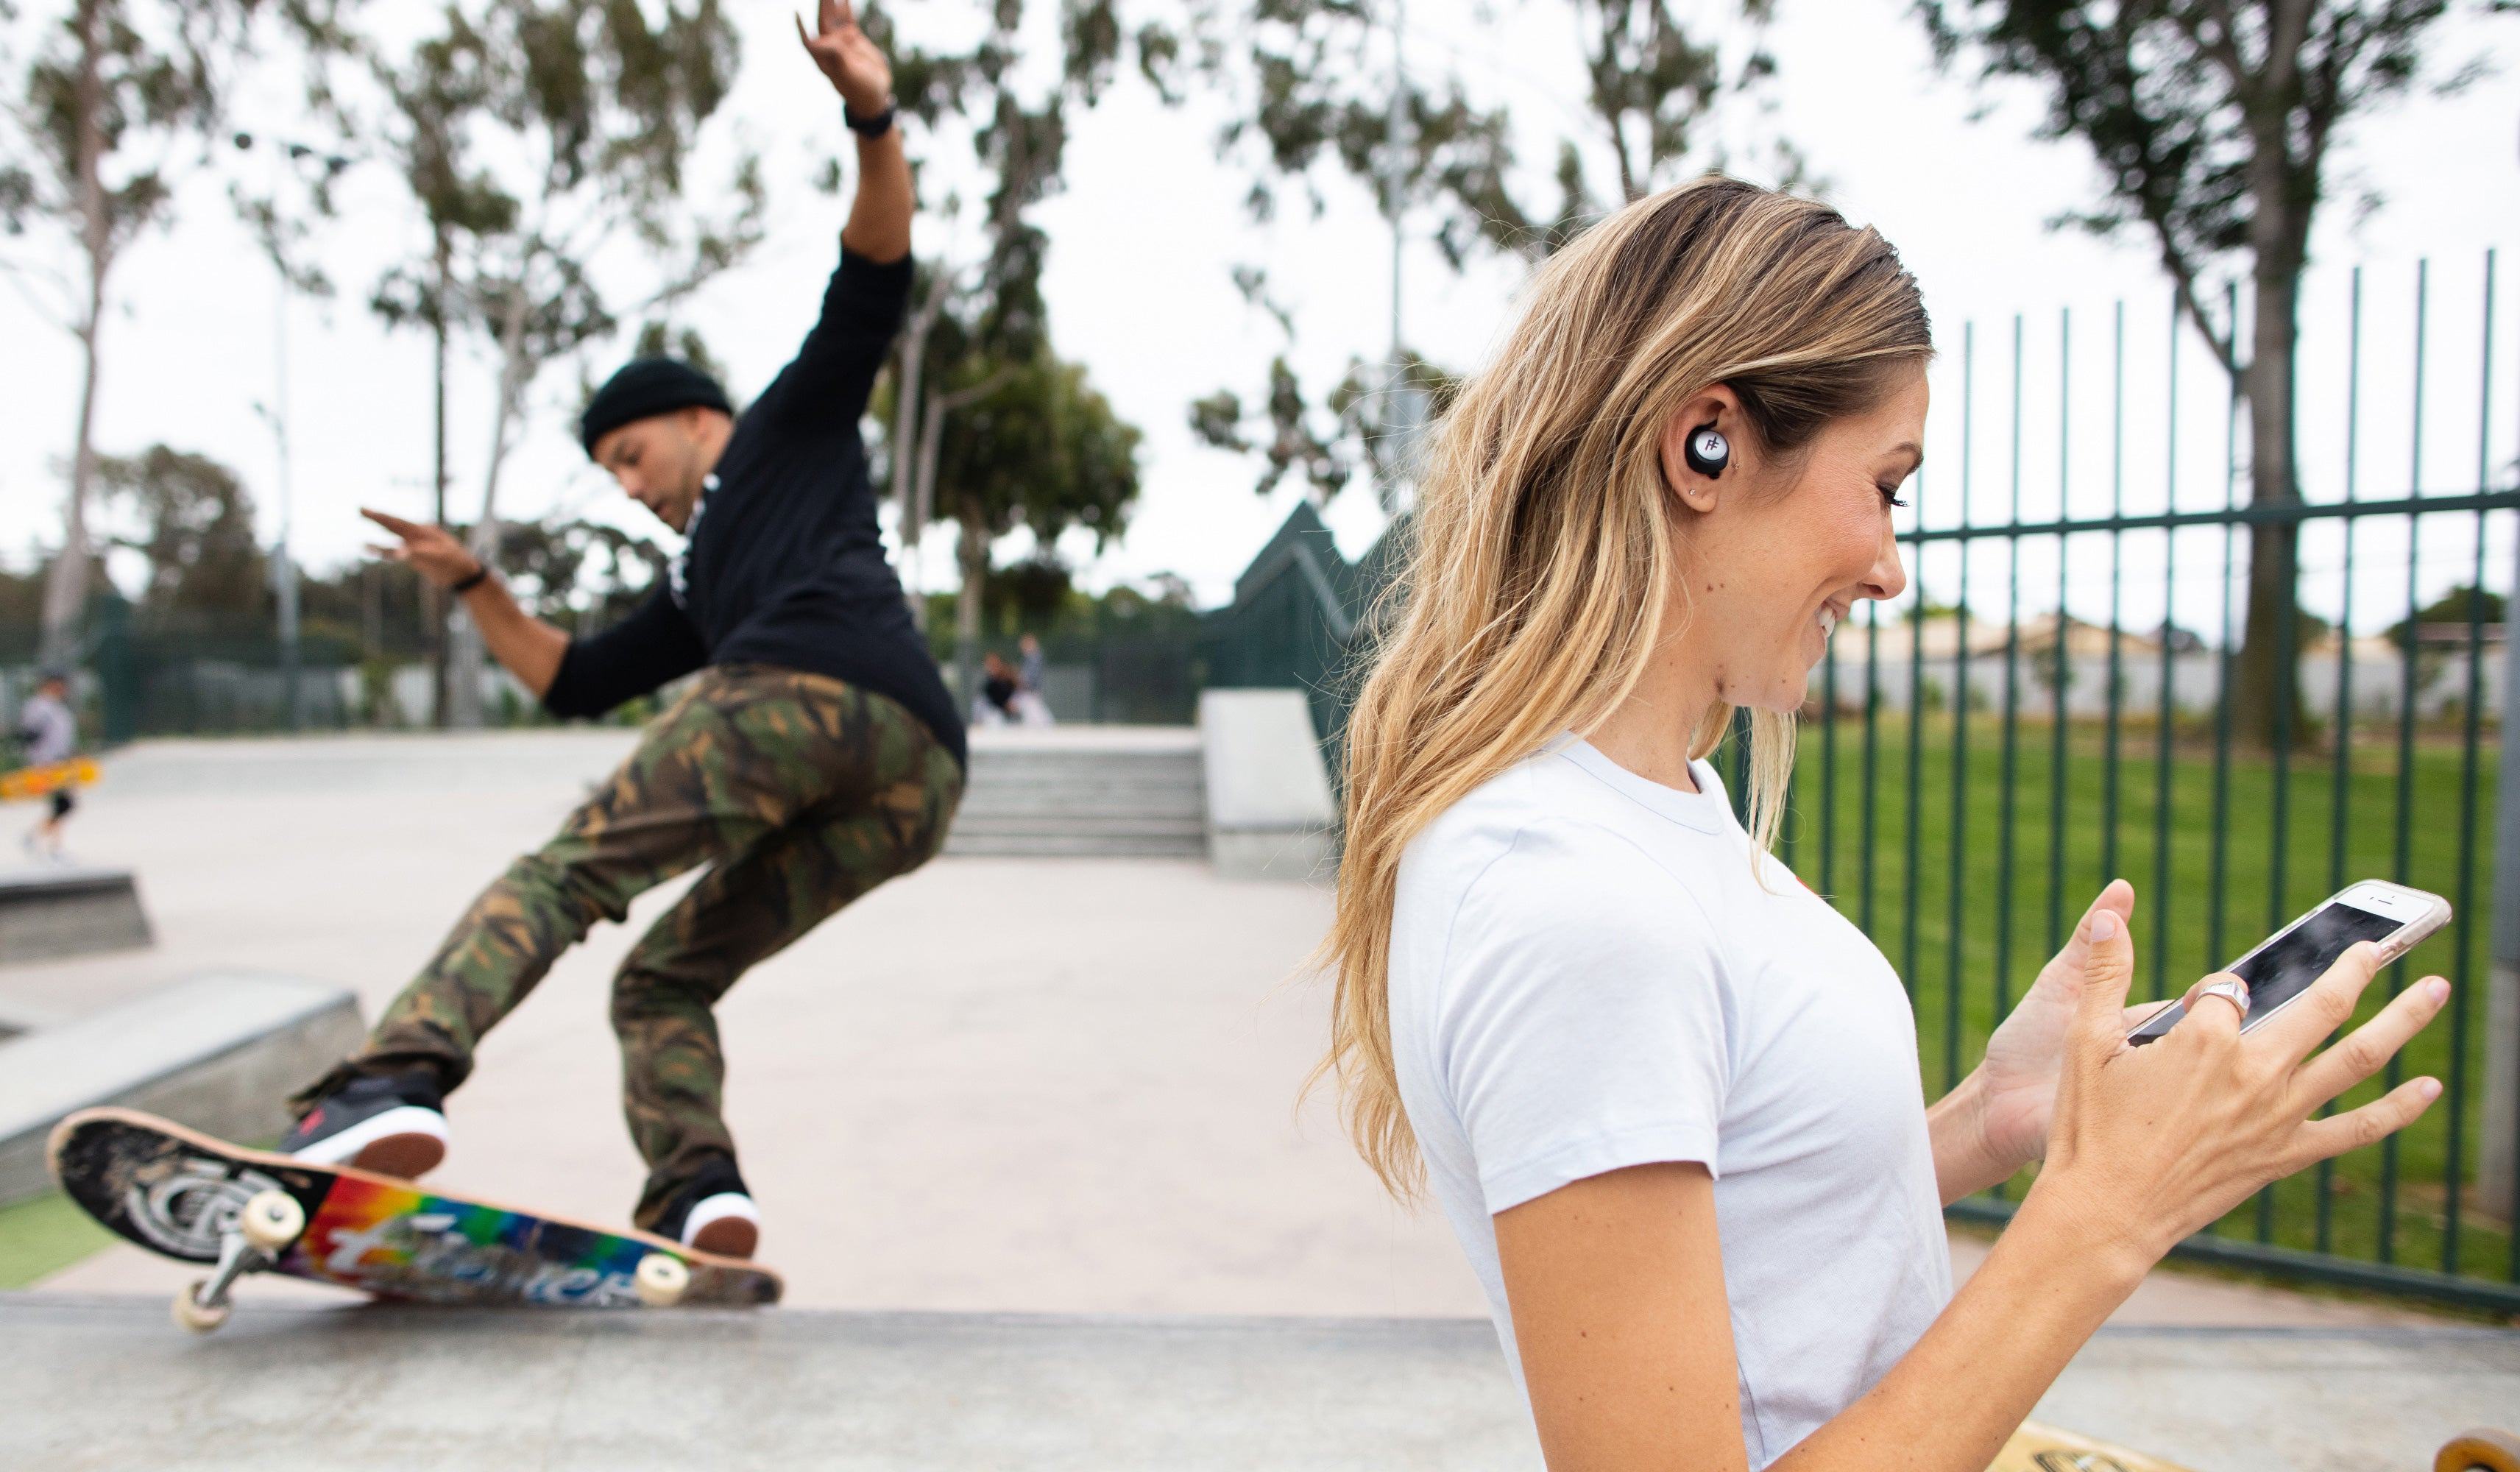 Woman using iFrogz Airtime earbuds in a skatepark. Man doing a skateboard trick behind her.